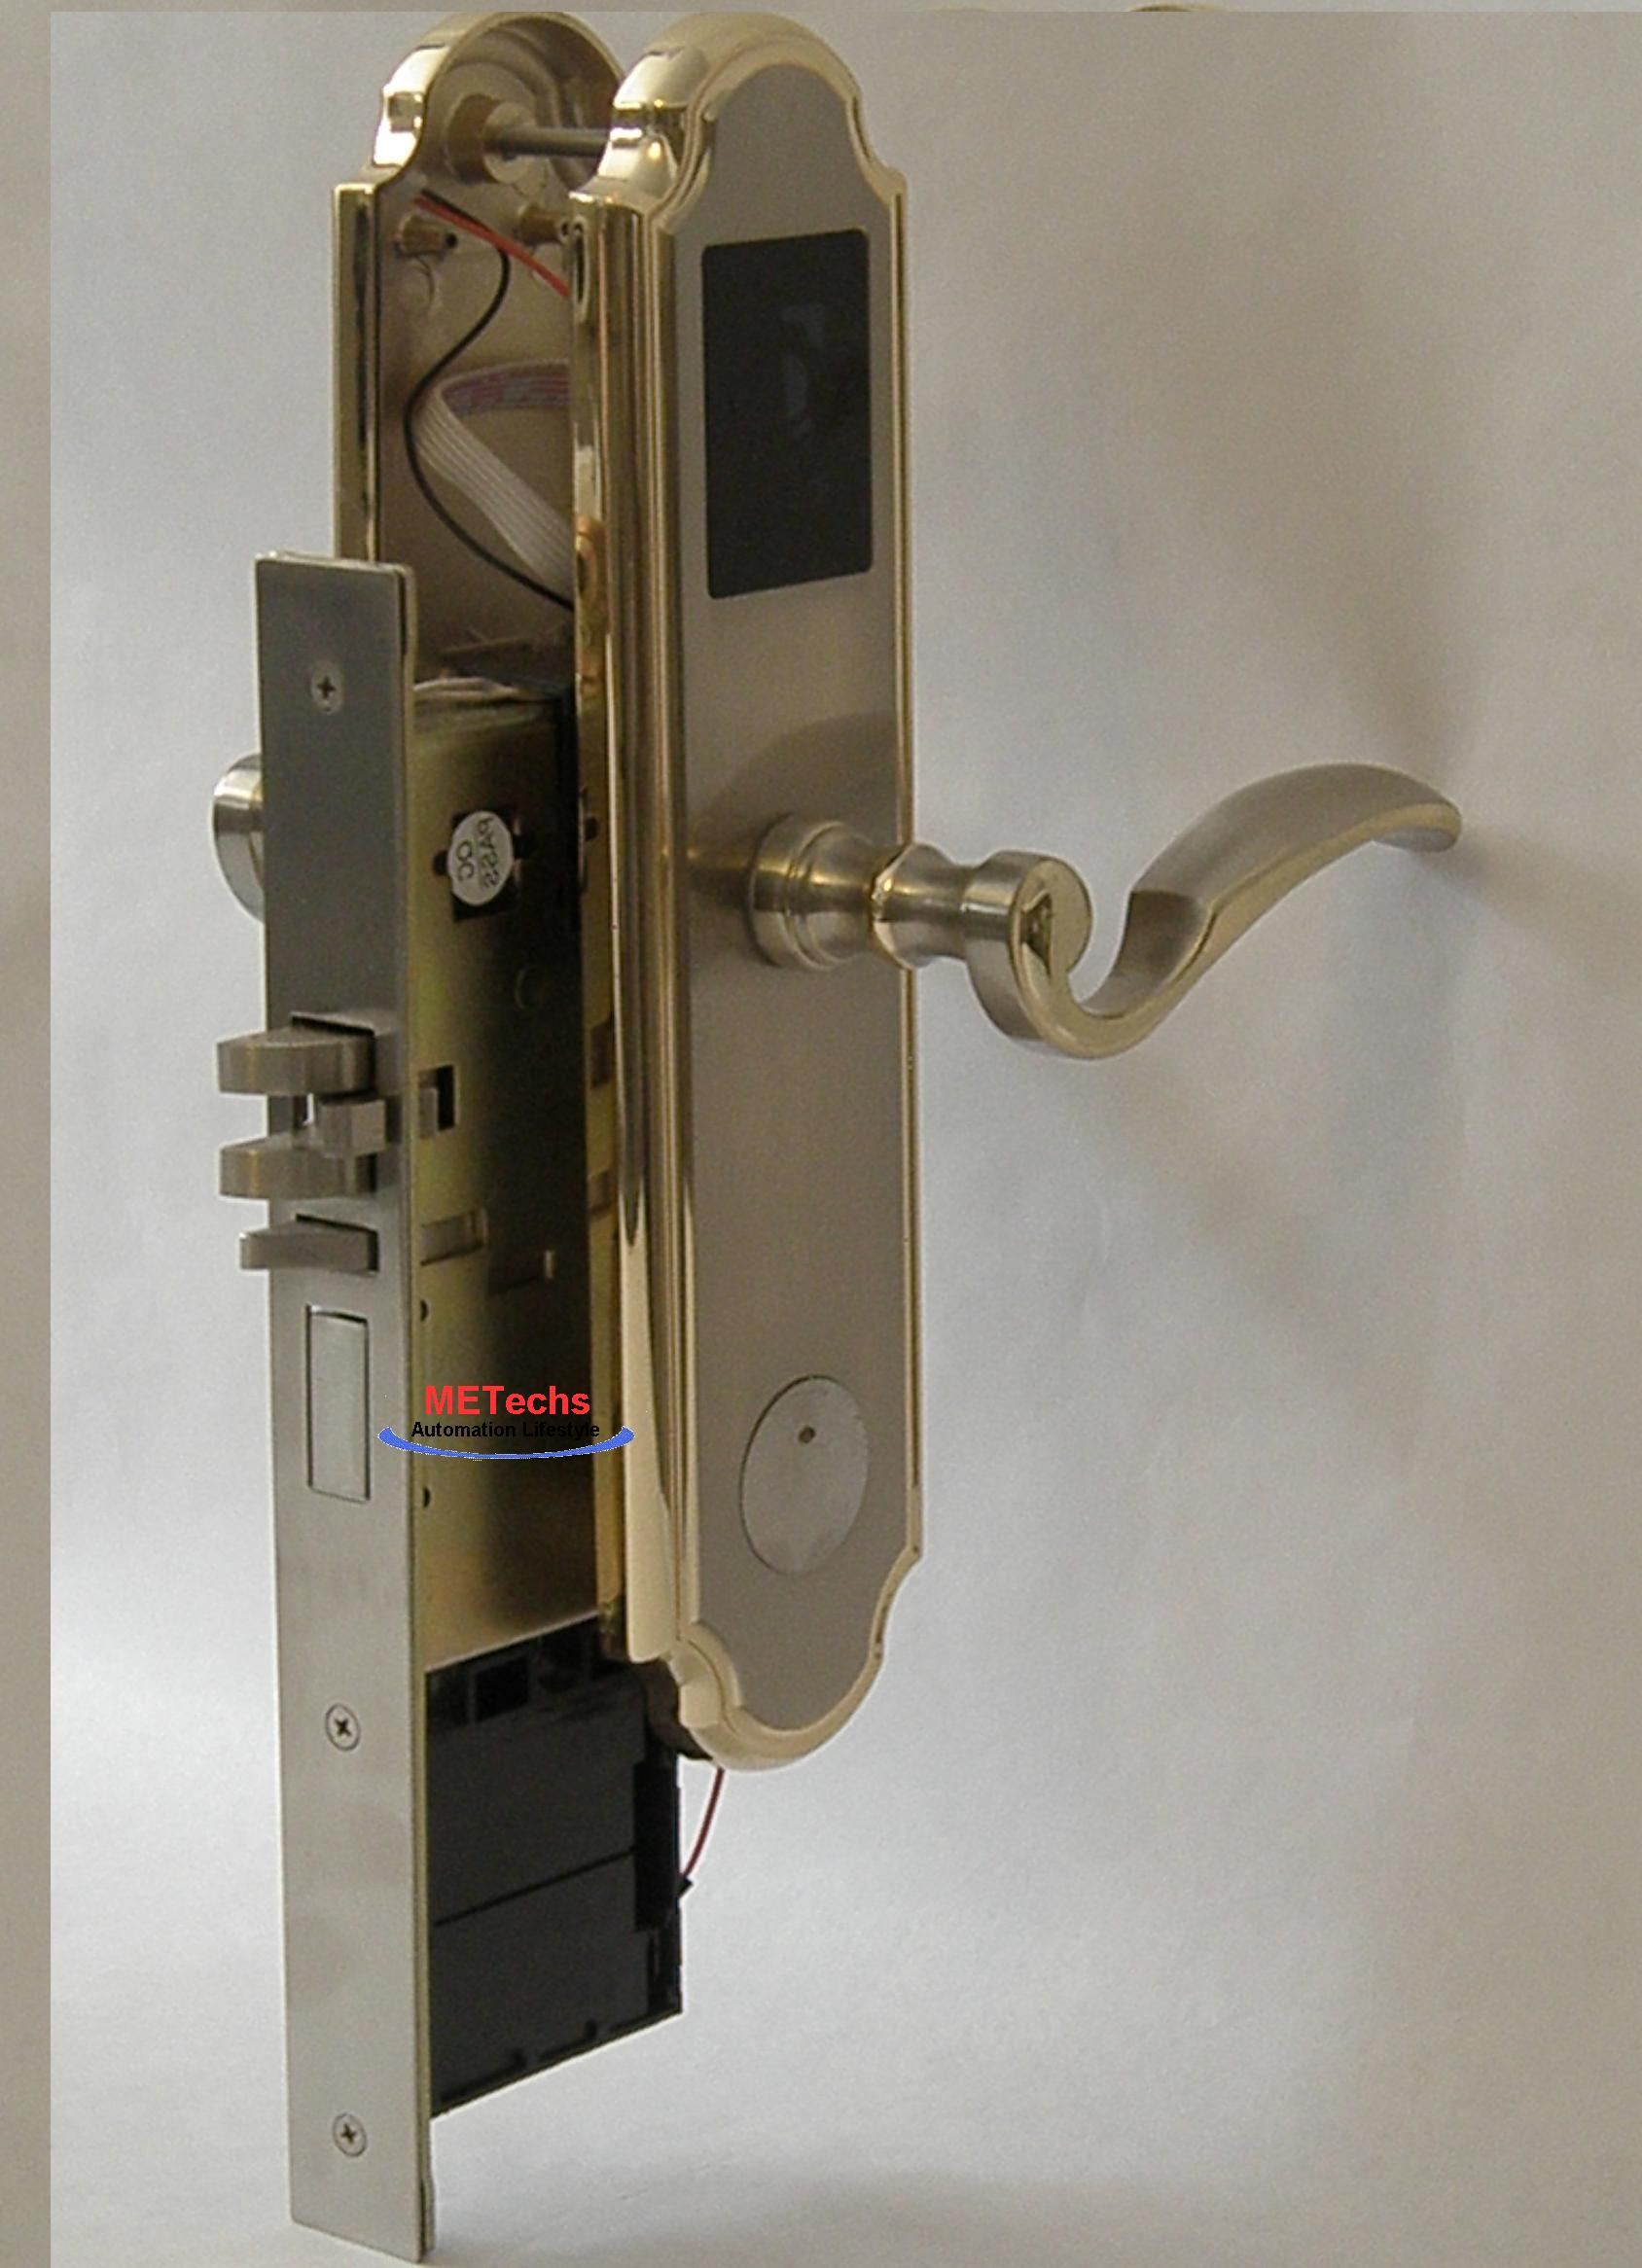 keyless em card control door lock bid200jrh right hand